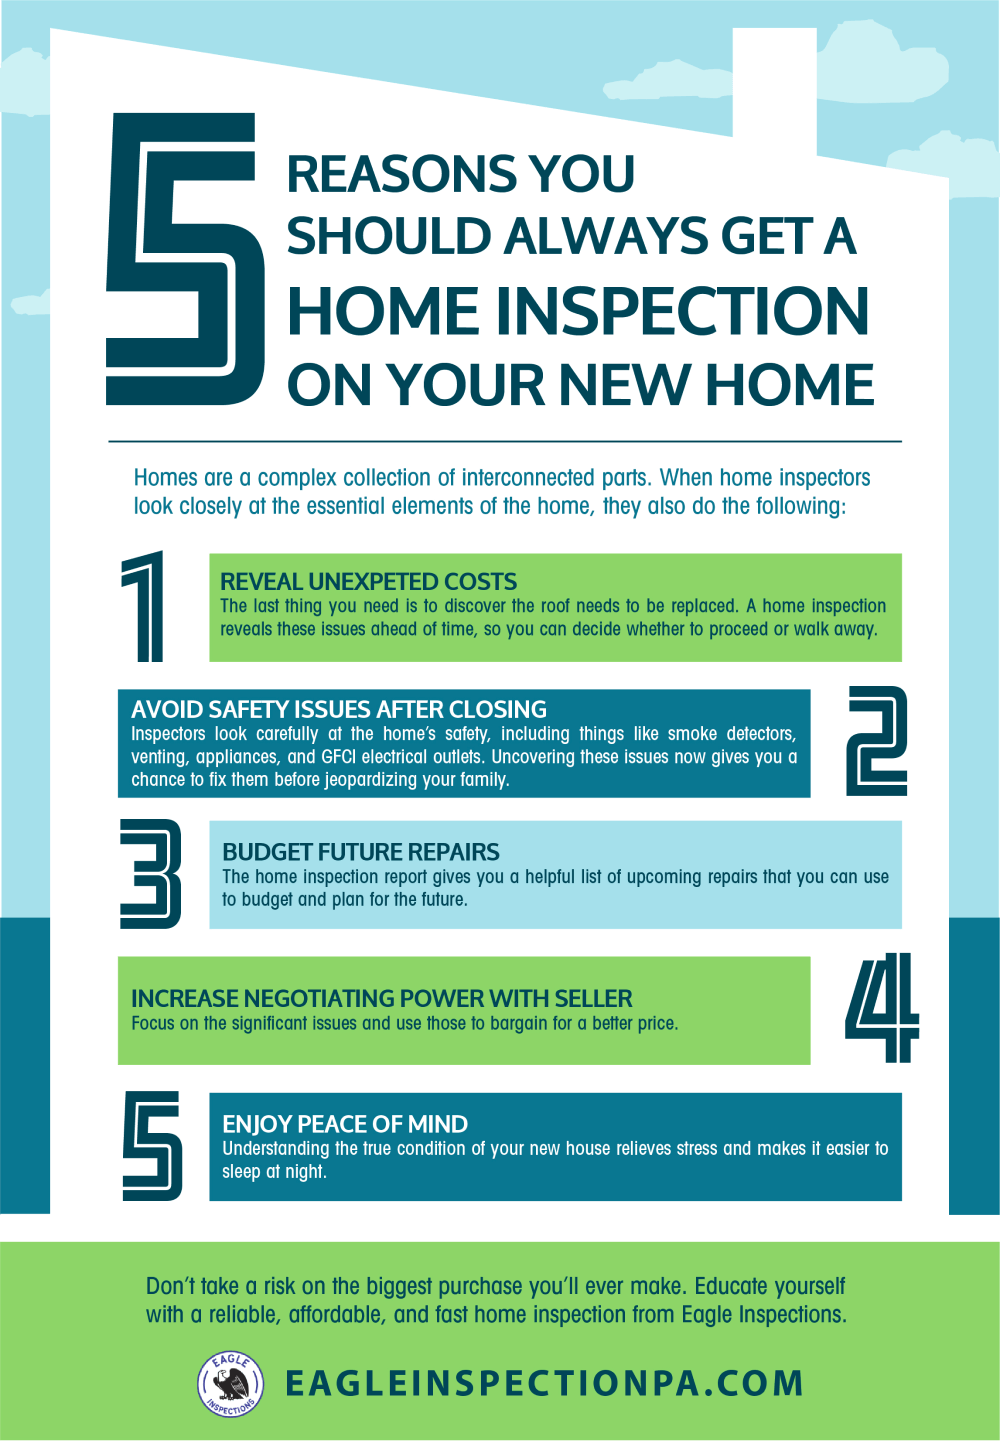 Why You Should Always Get an Inspection on Your New Home